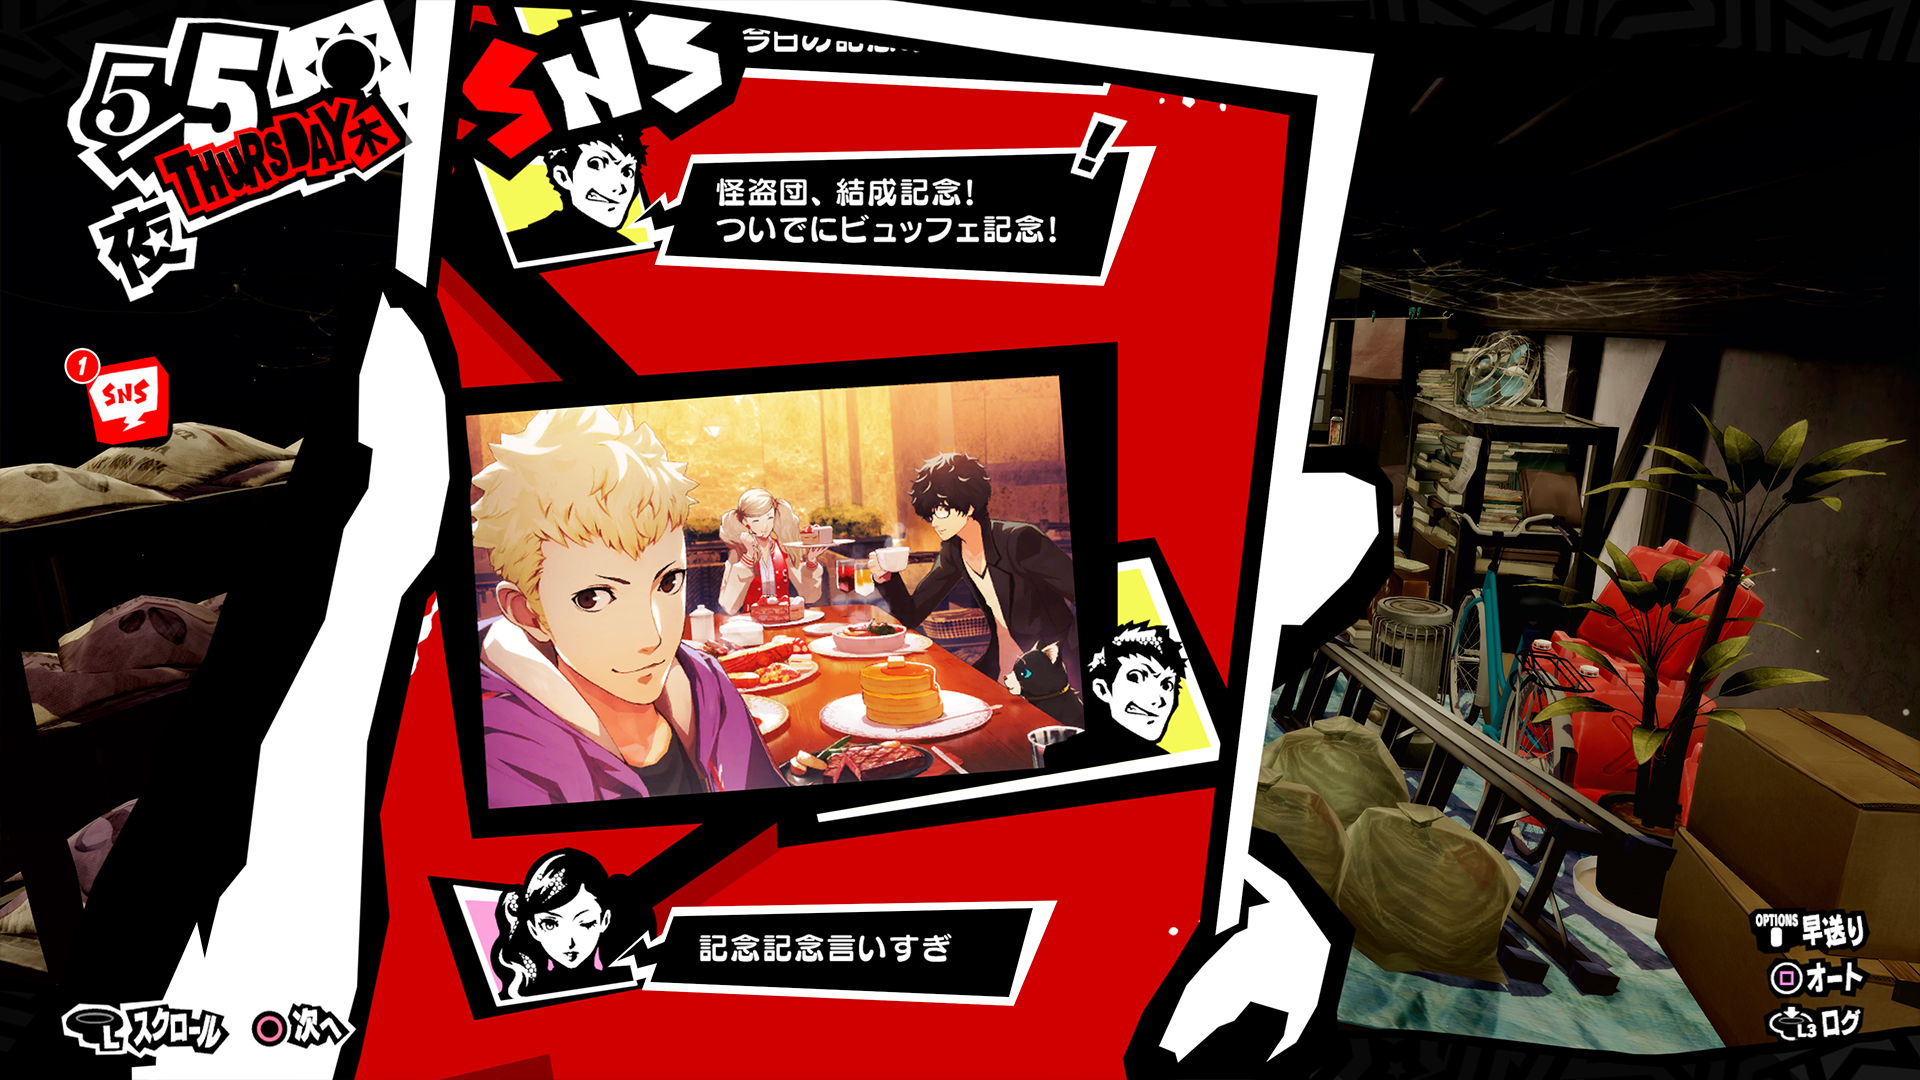 Summary of the Persona 5 Royal info from the trailer and website